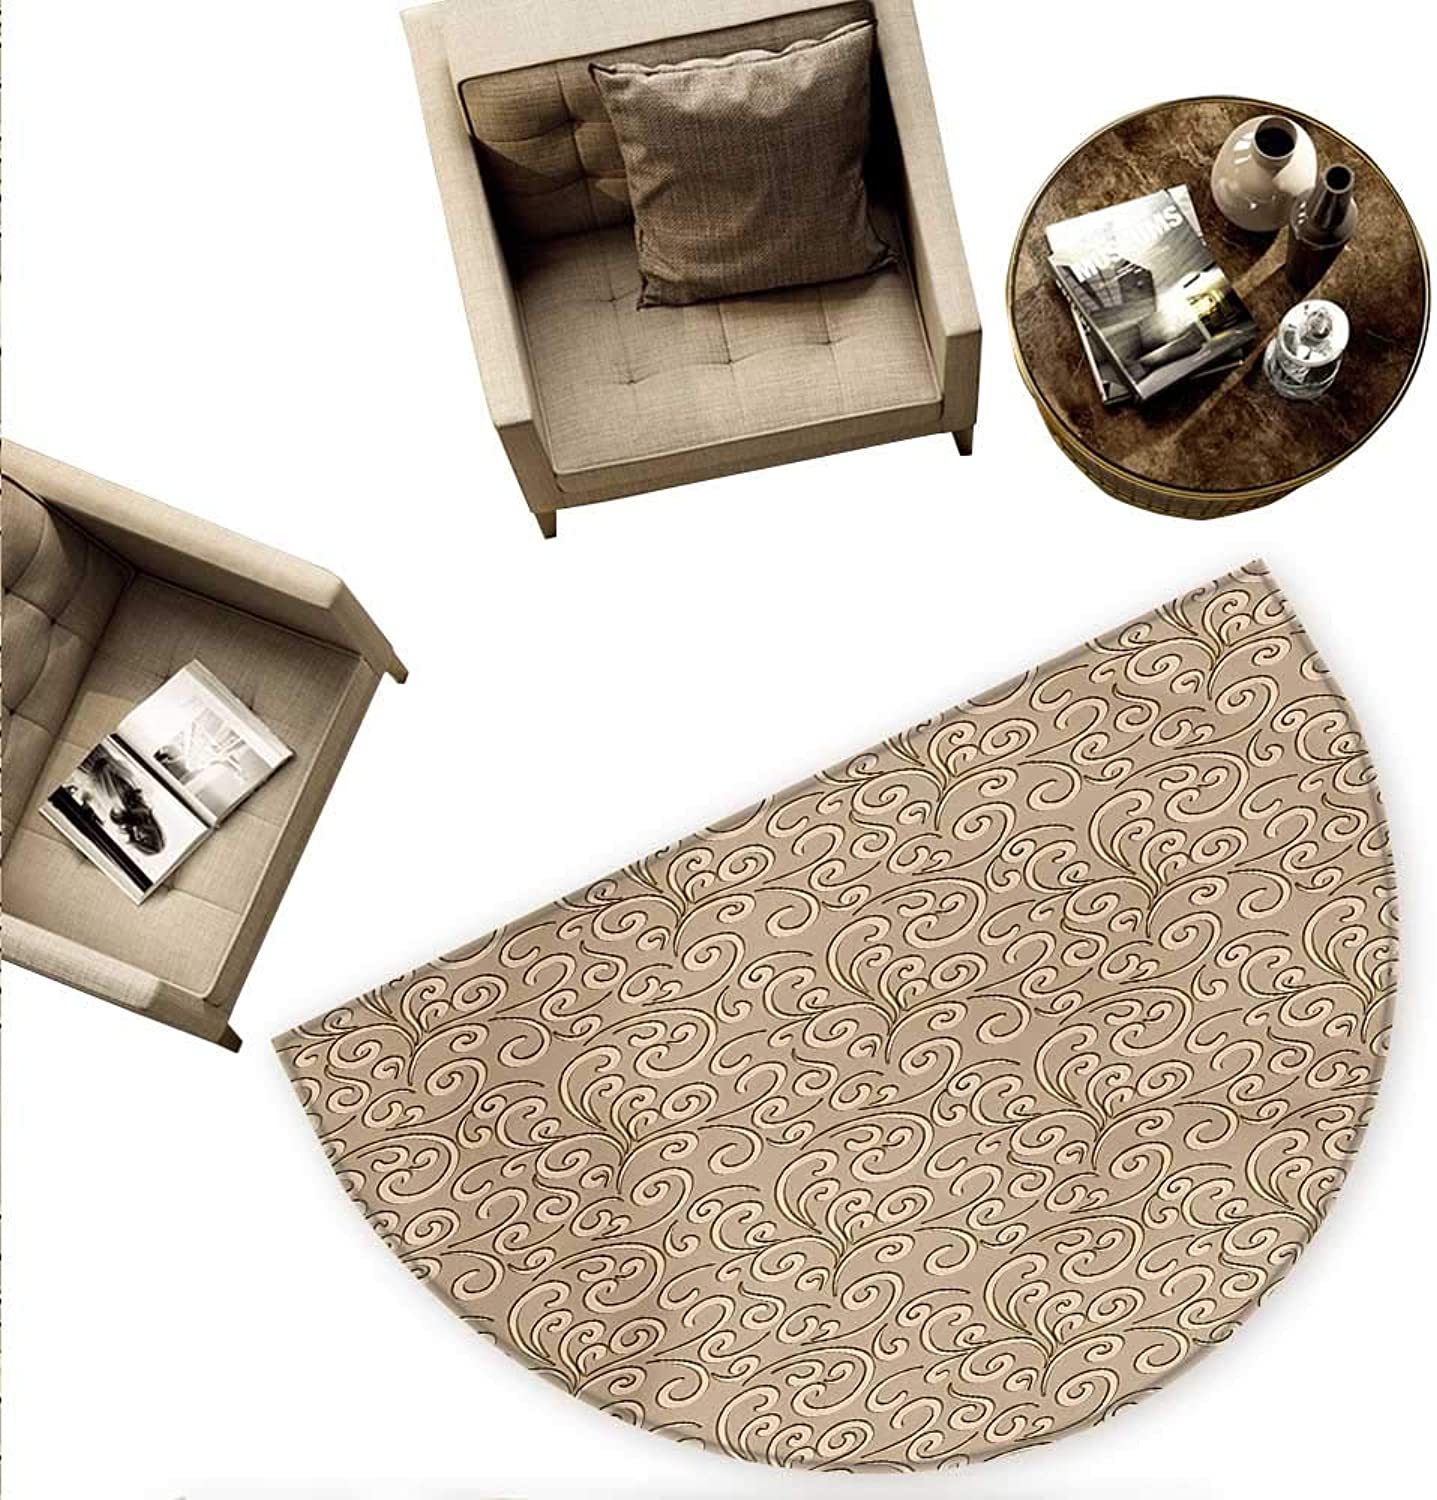 Beige Semicircular Cushion Floral Swirls Damask Pattern Classic Victorian Style in Retro Antique Background Entry Door Mat H 59  xD 88.6  French Beige